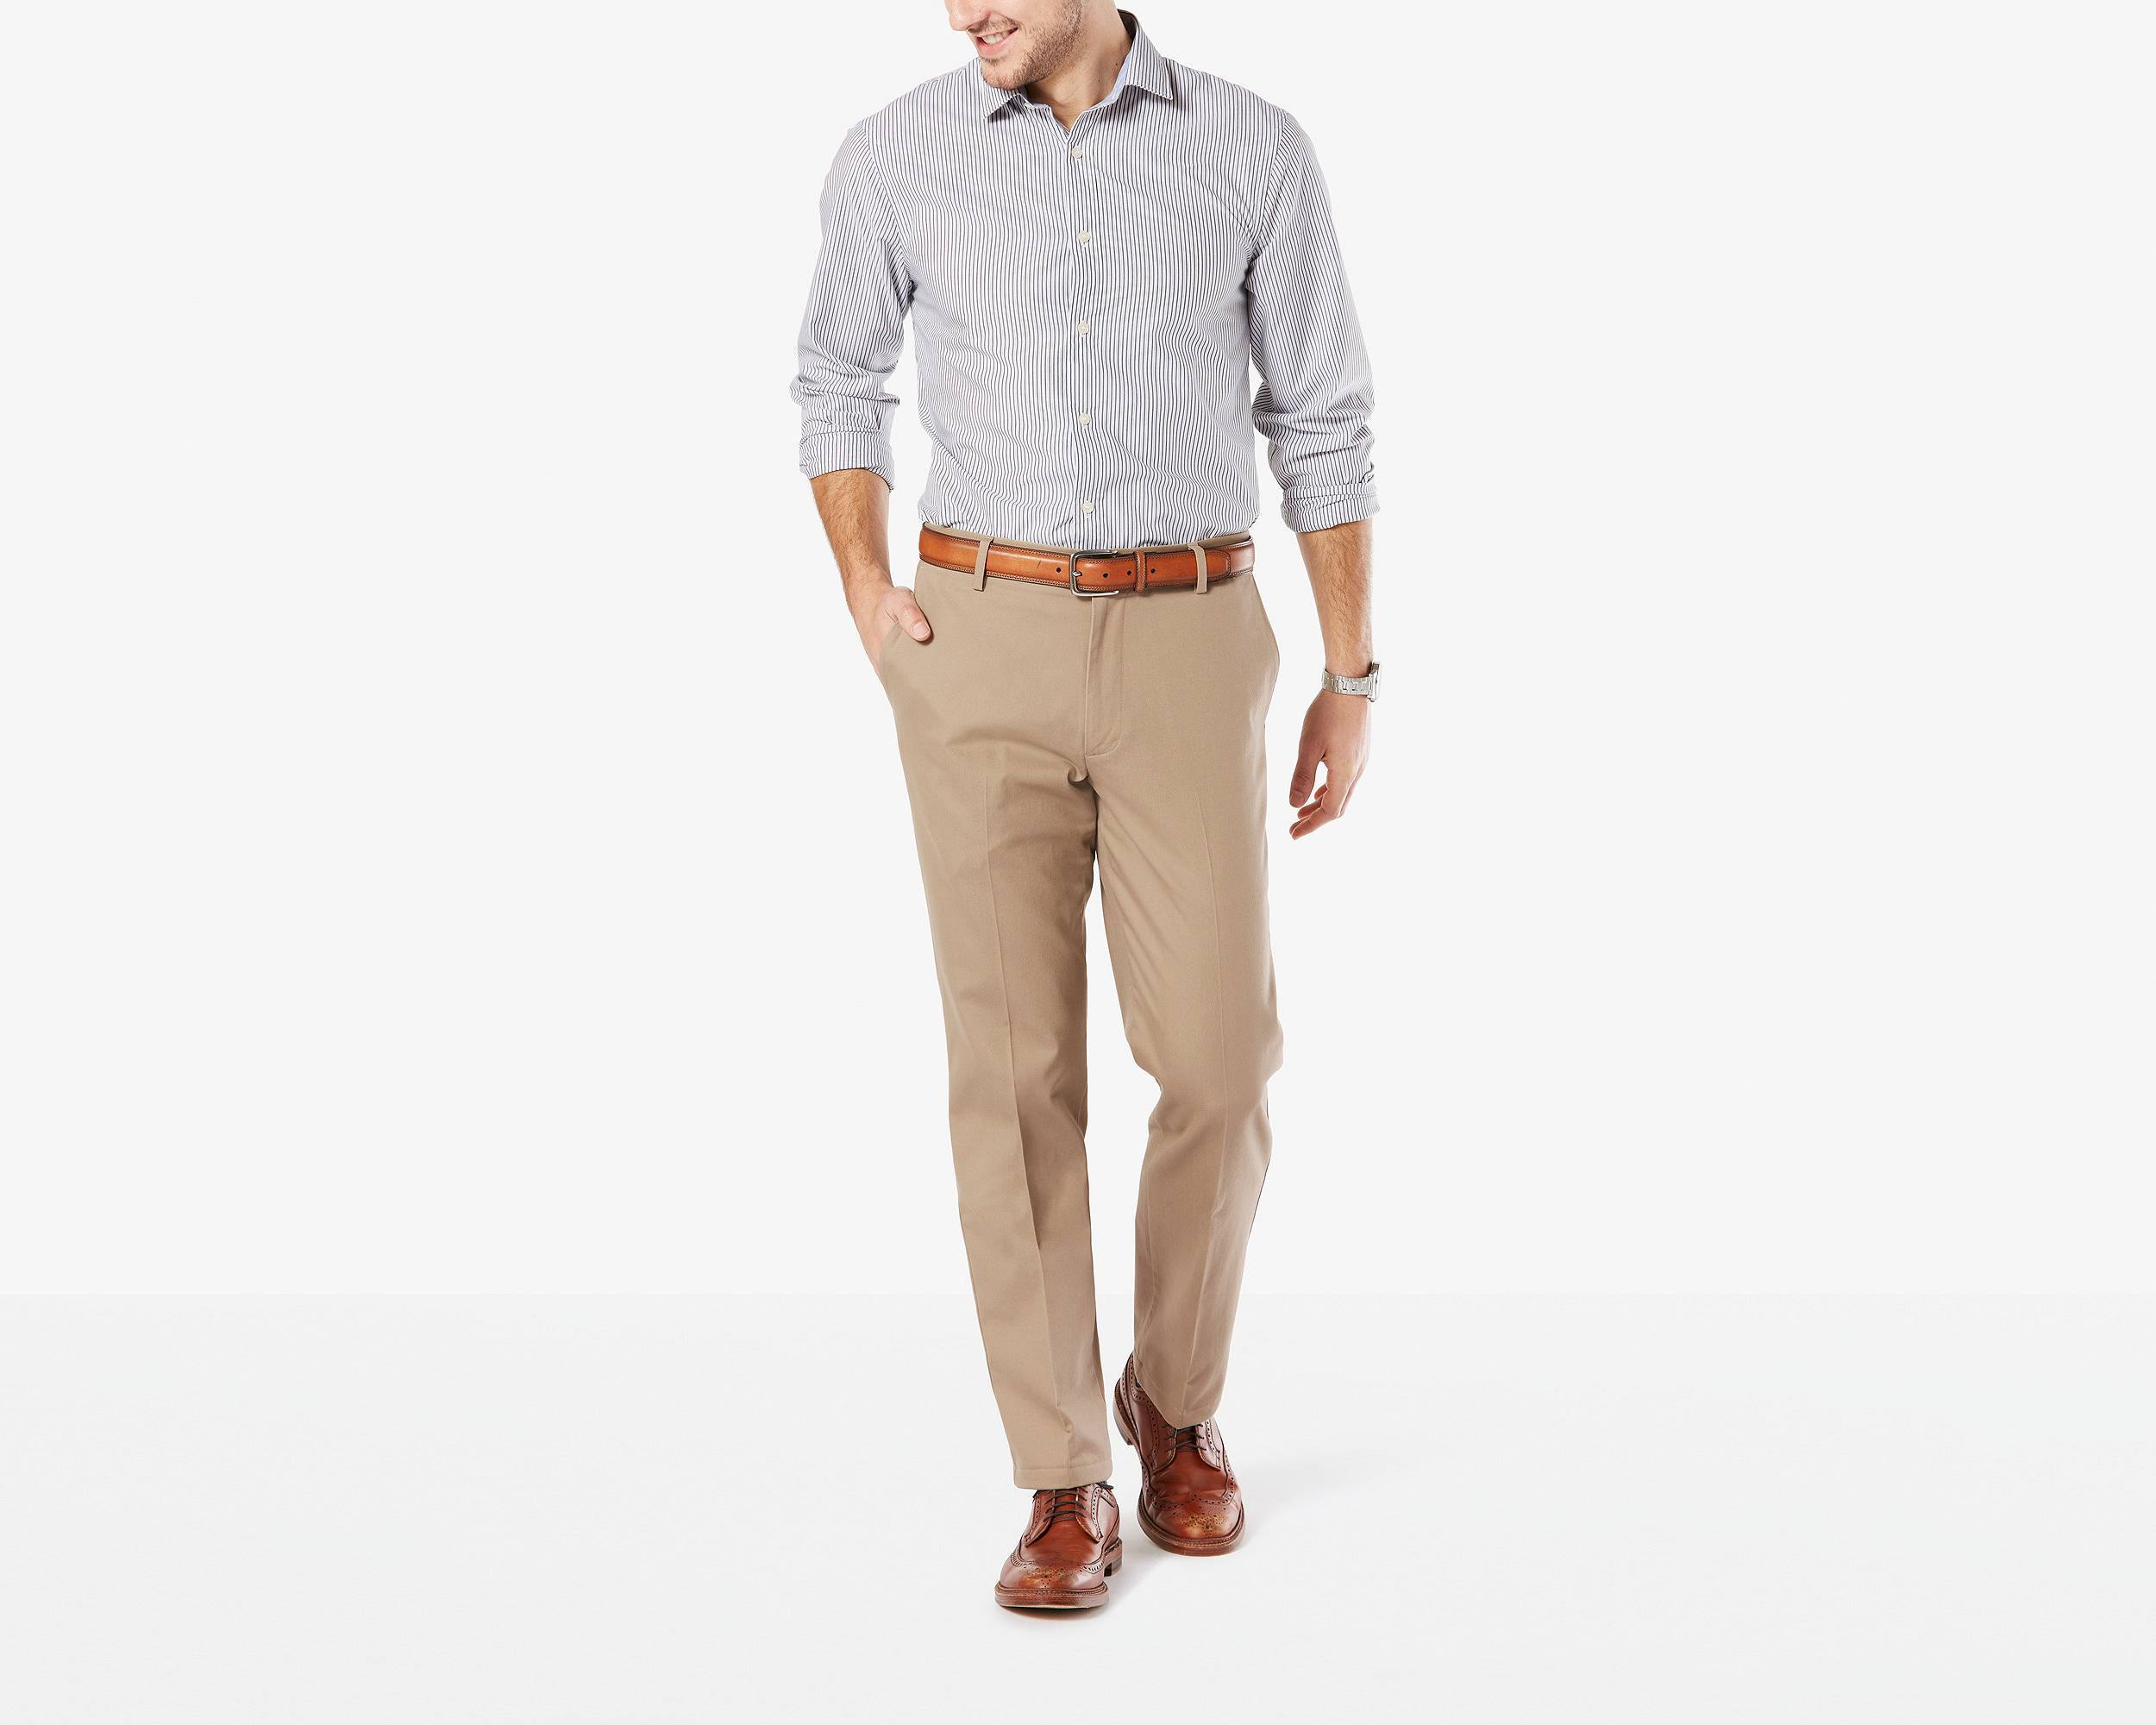 Khaki pants- Importance of khaki dress